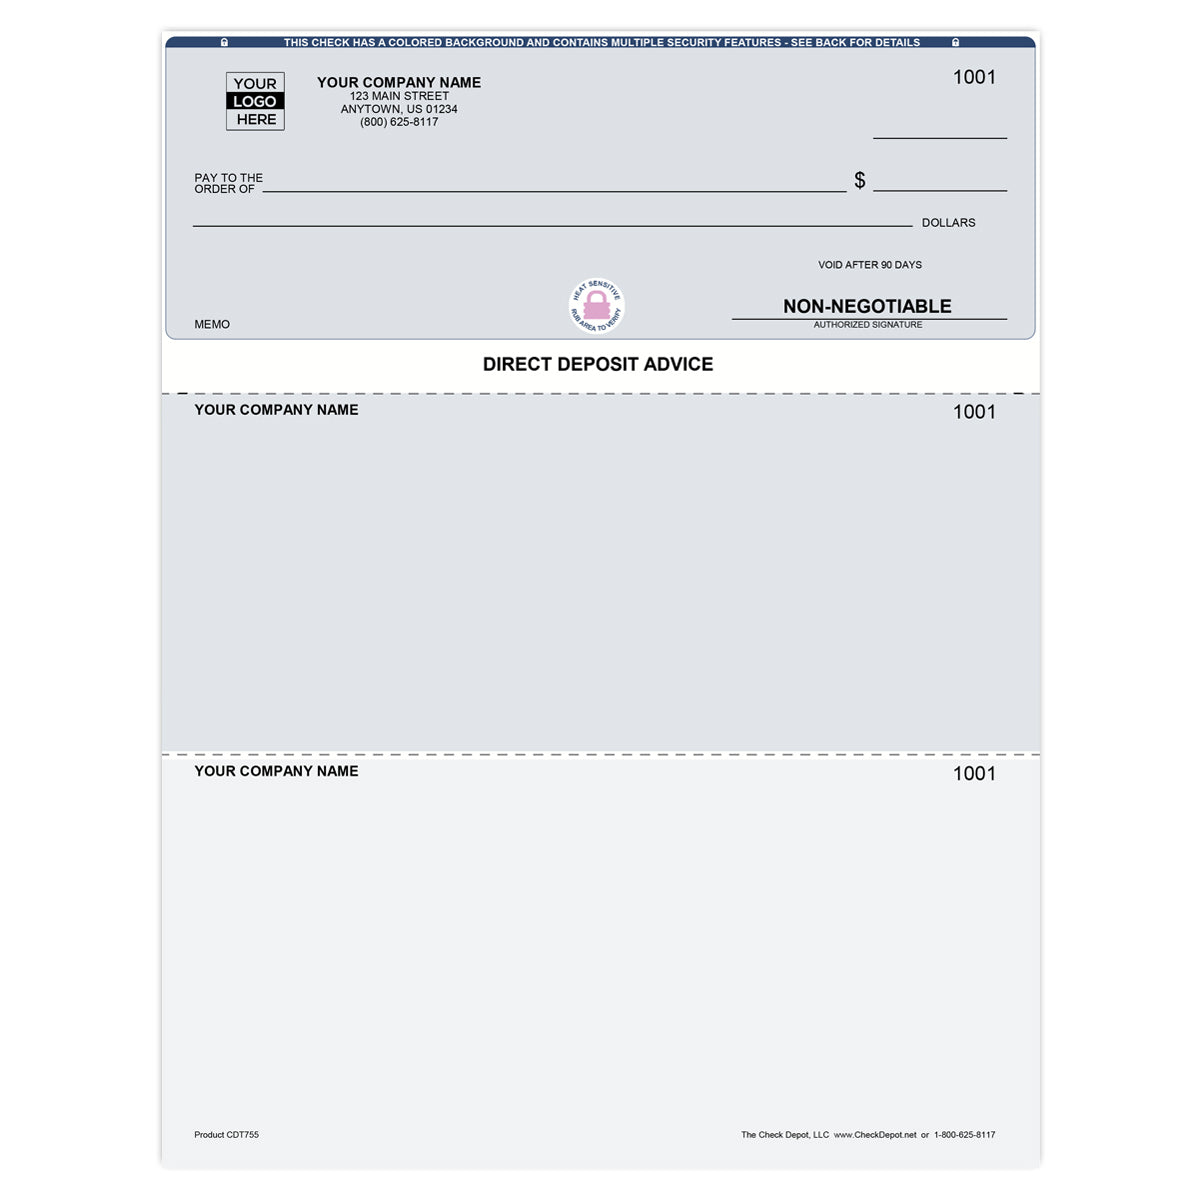 QuickBooks Top Direct Deposit Advice Slips - Check Depot